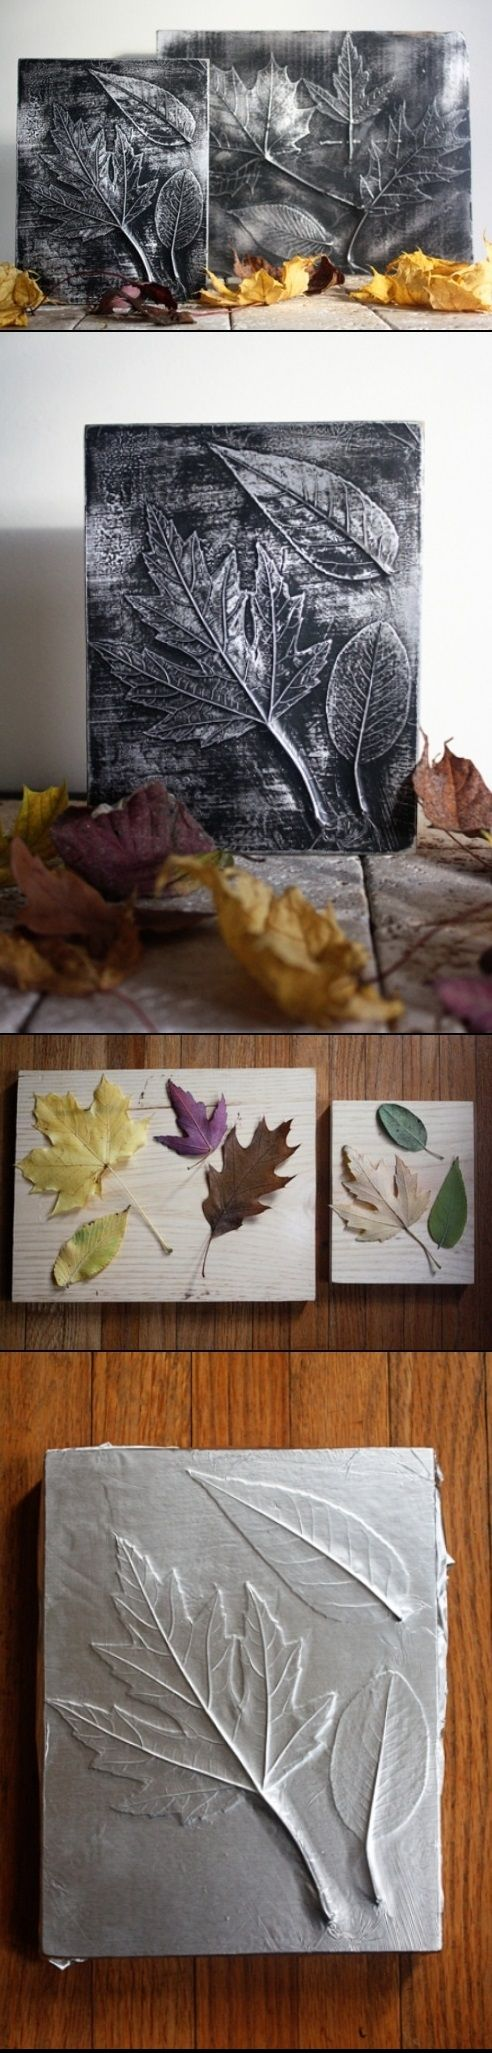 20. USE LEAVES AND METALLIC SHEETS